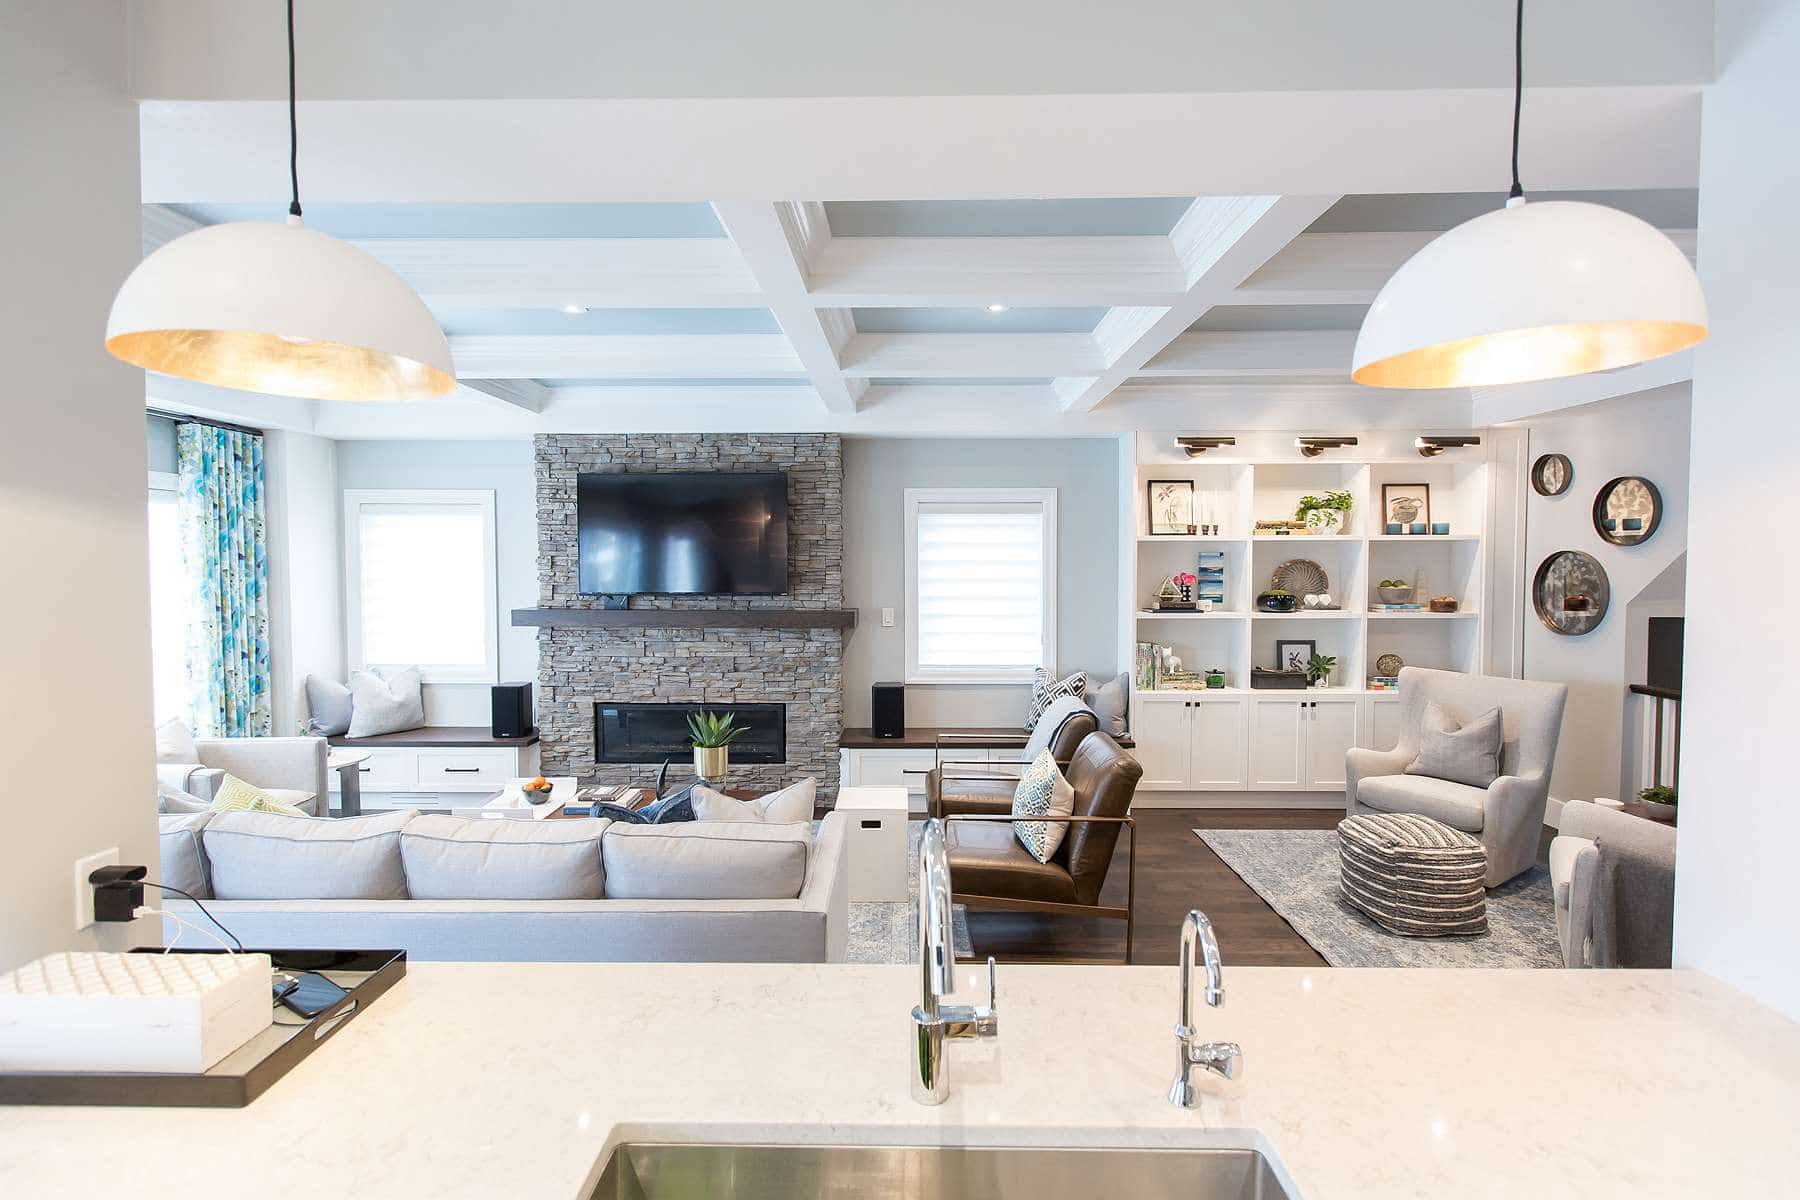 View of Family Room from Kitchen featuring white and gold dome pendant lighting, blue coffered ceiling, stacked stone fireplace and built in wall units